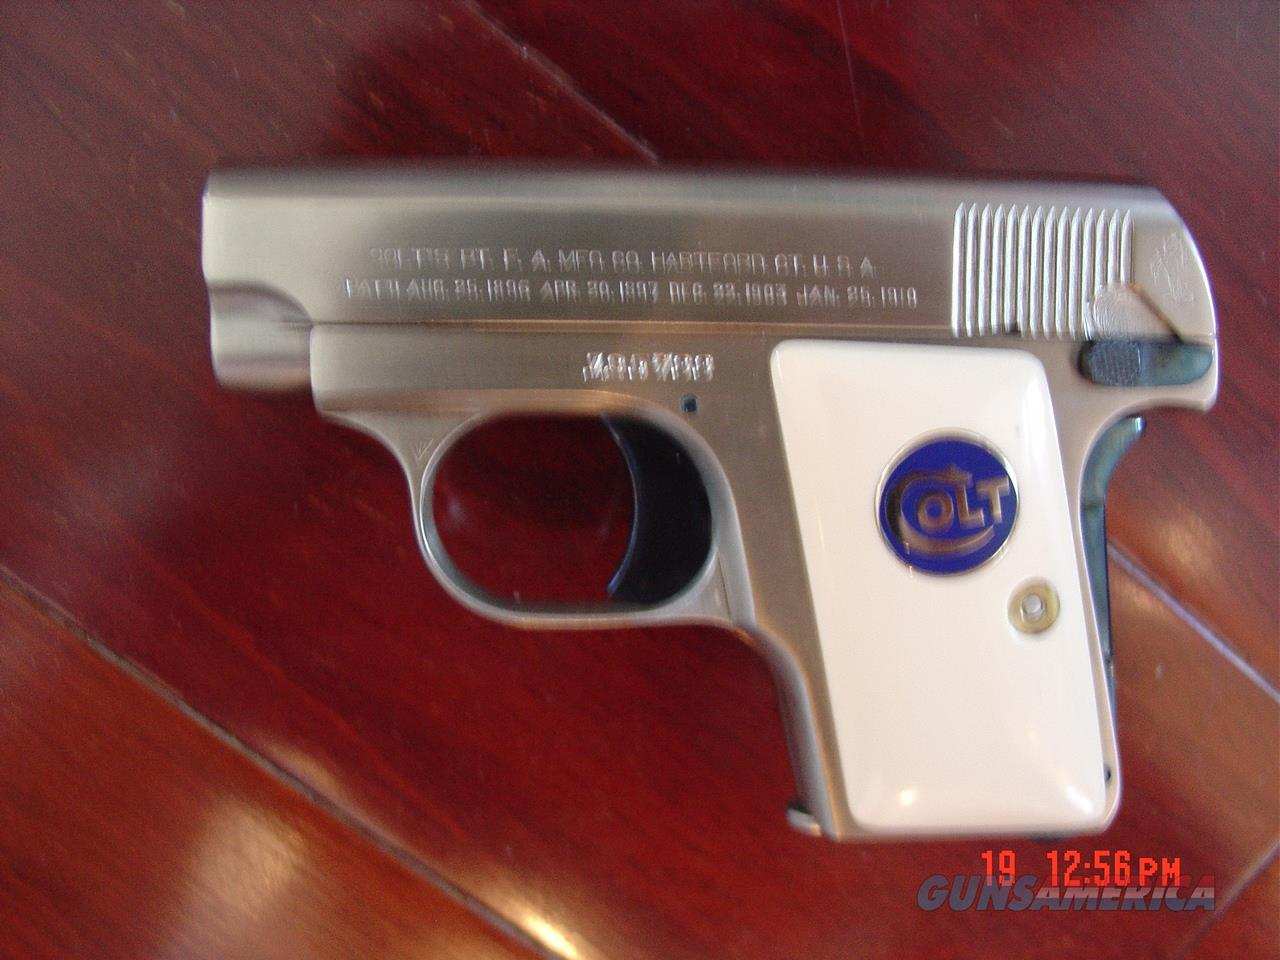 Colt 1908,25 cal.Vest pocket,hammerless,fully refinished in satin brushed nickel with blue accents,bonded ivory grips,,& made in 1915 !! looks better than new !!awesome pocket pistol !!  Guns > Pistols > Colt Automatic Pistols (.25, .32, & .380 cal)